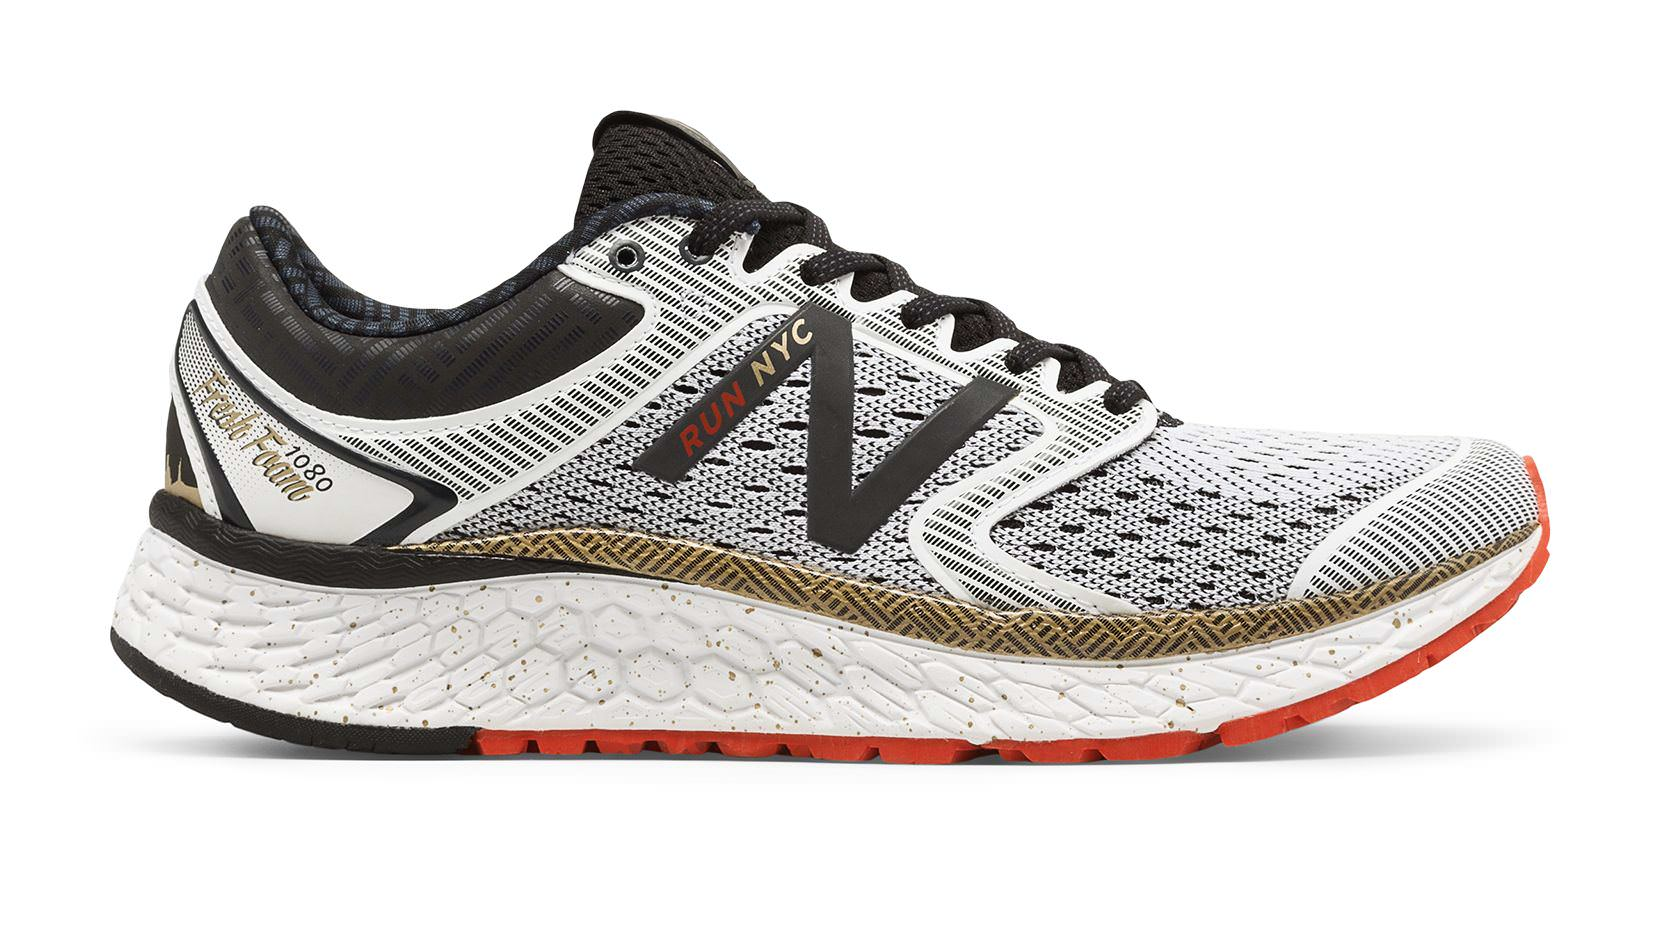 NB 1080v7 - lateral